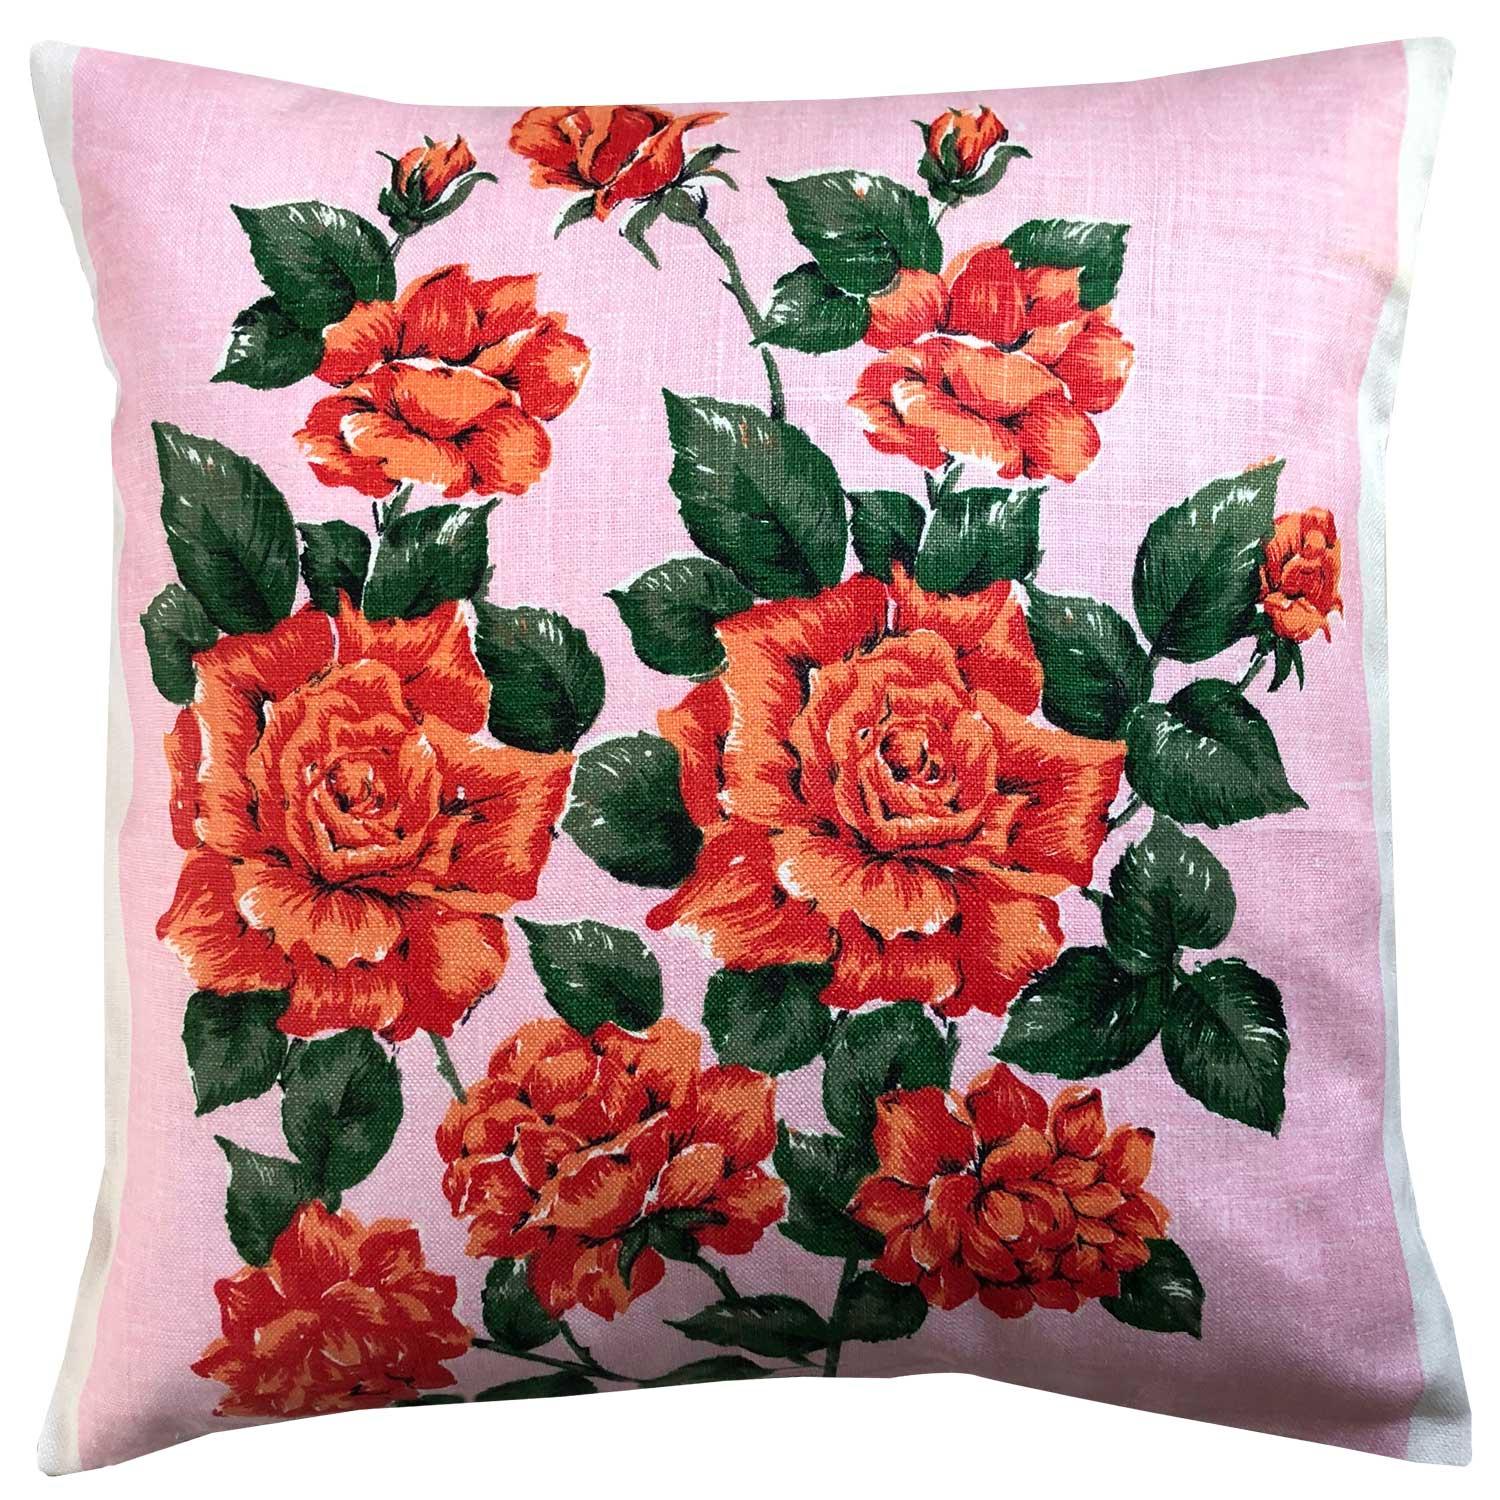 Apricot and orange roses on pink vintage linen cushion cover